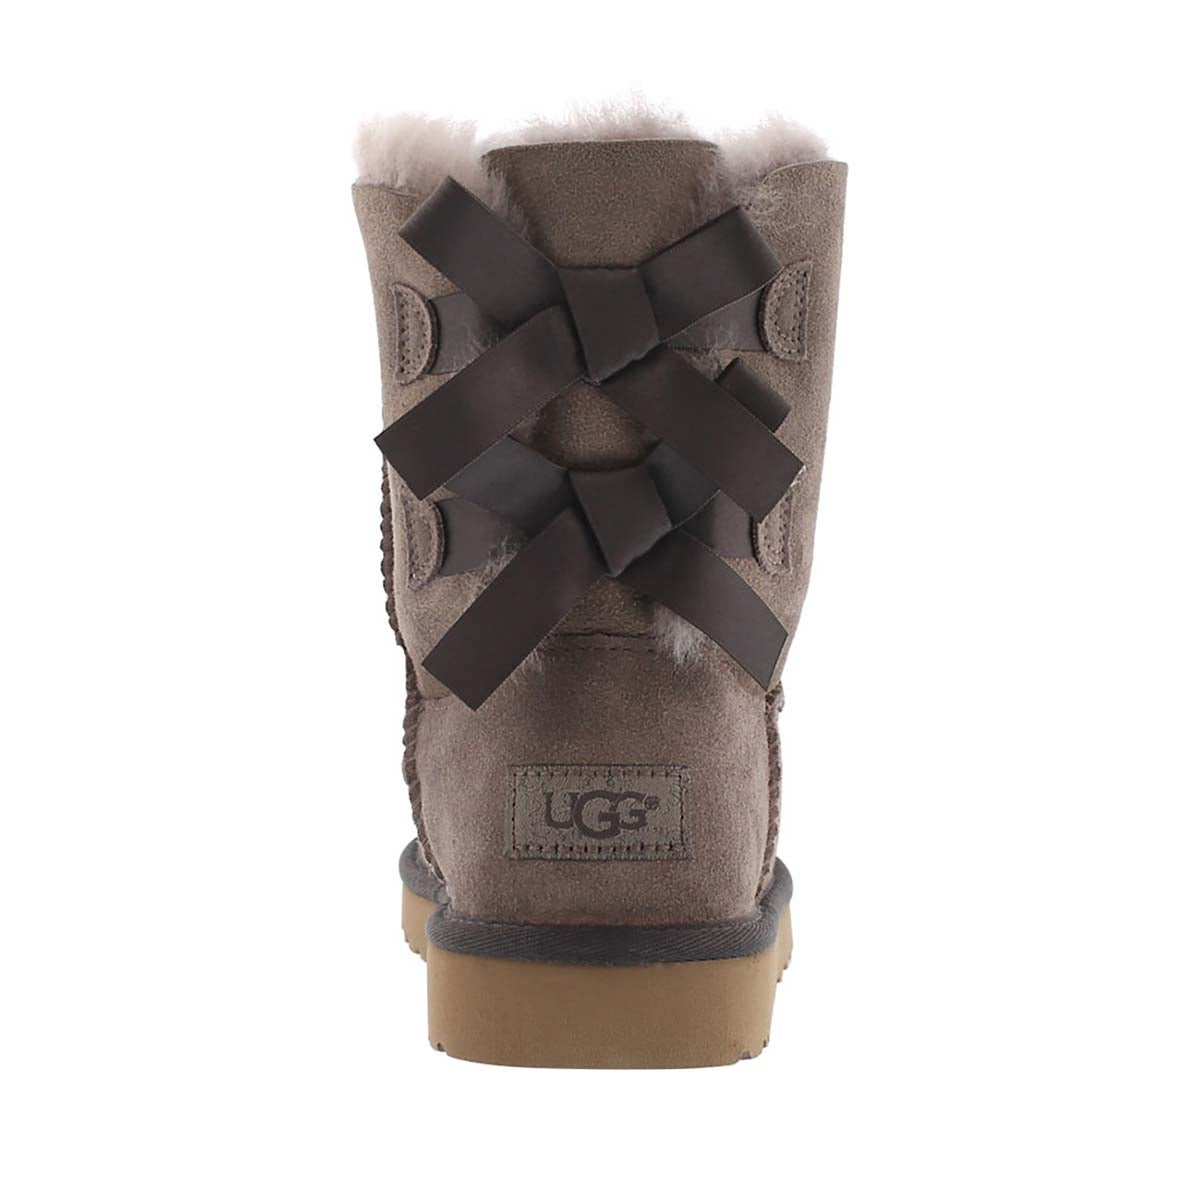 16cf658792339 Botte Ugg Pour Fille - cheap watches mgc-gas.com